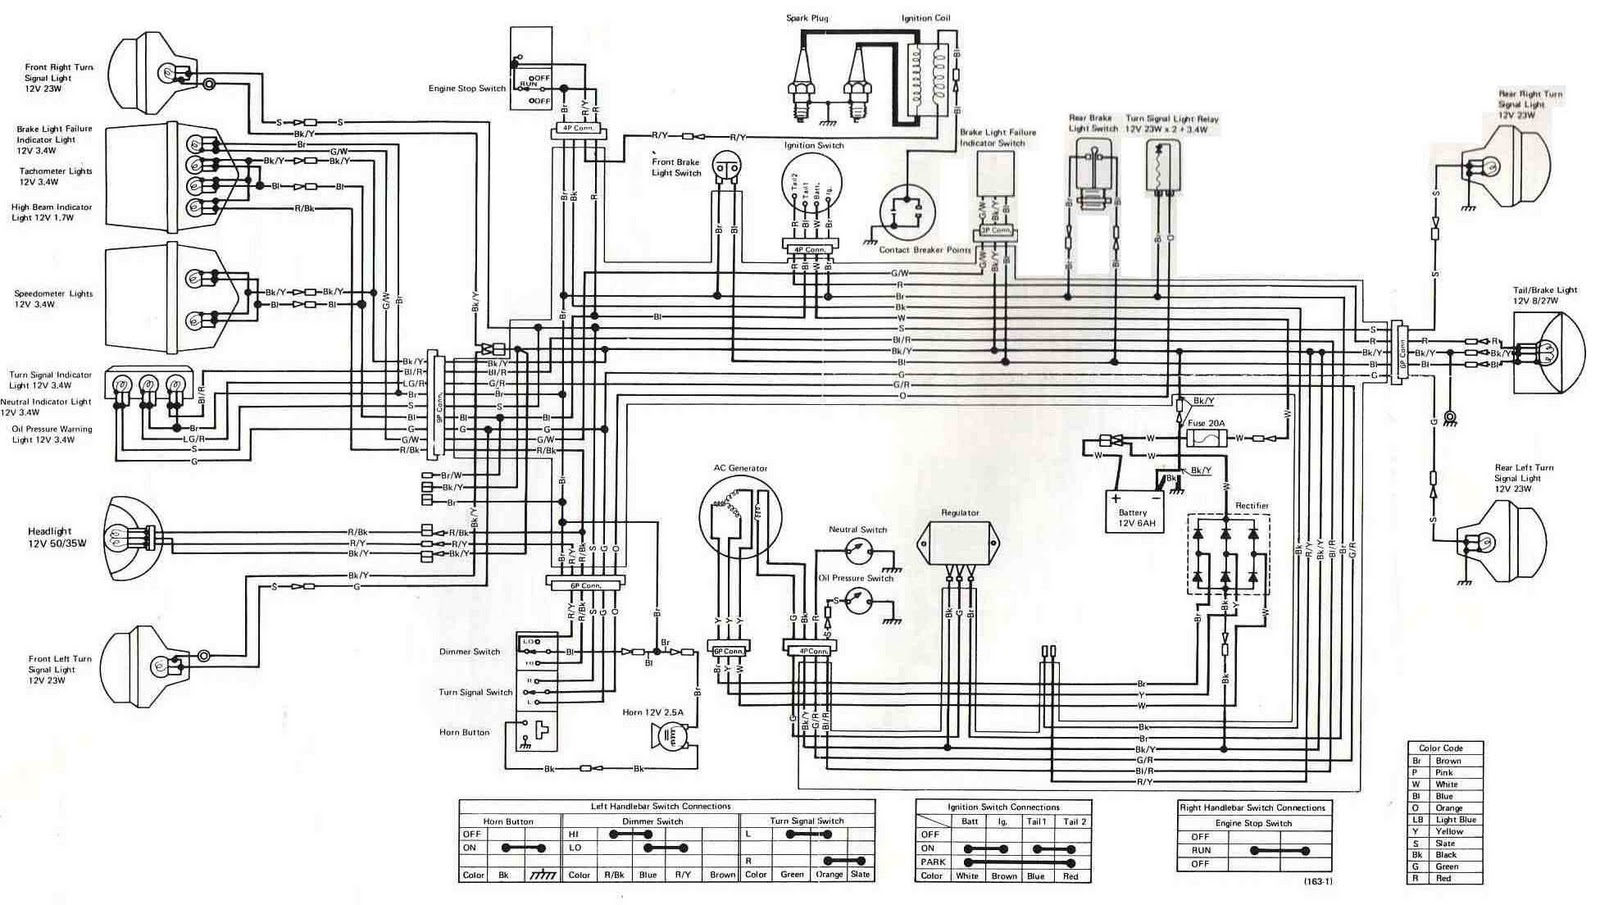 Kawasaki+KZ400+1975+Electrical+Wiring+Diagram kawasaki wiring diagram motorcycle wiring diagrams \u2022 free wiring kawasaki zx9r e1 wiring diagram at alyssarenee.co